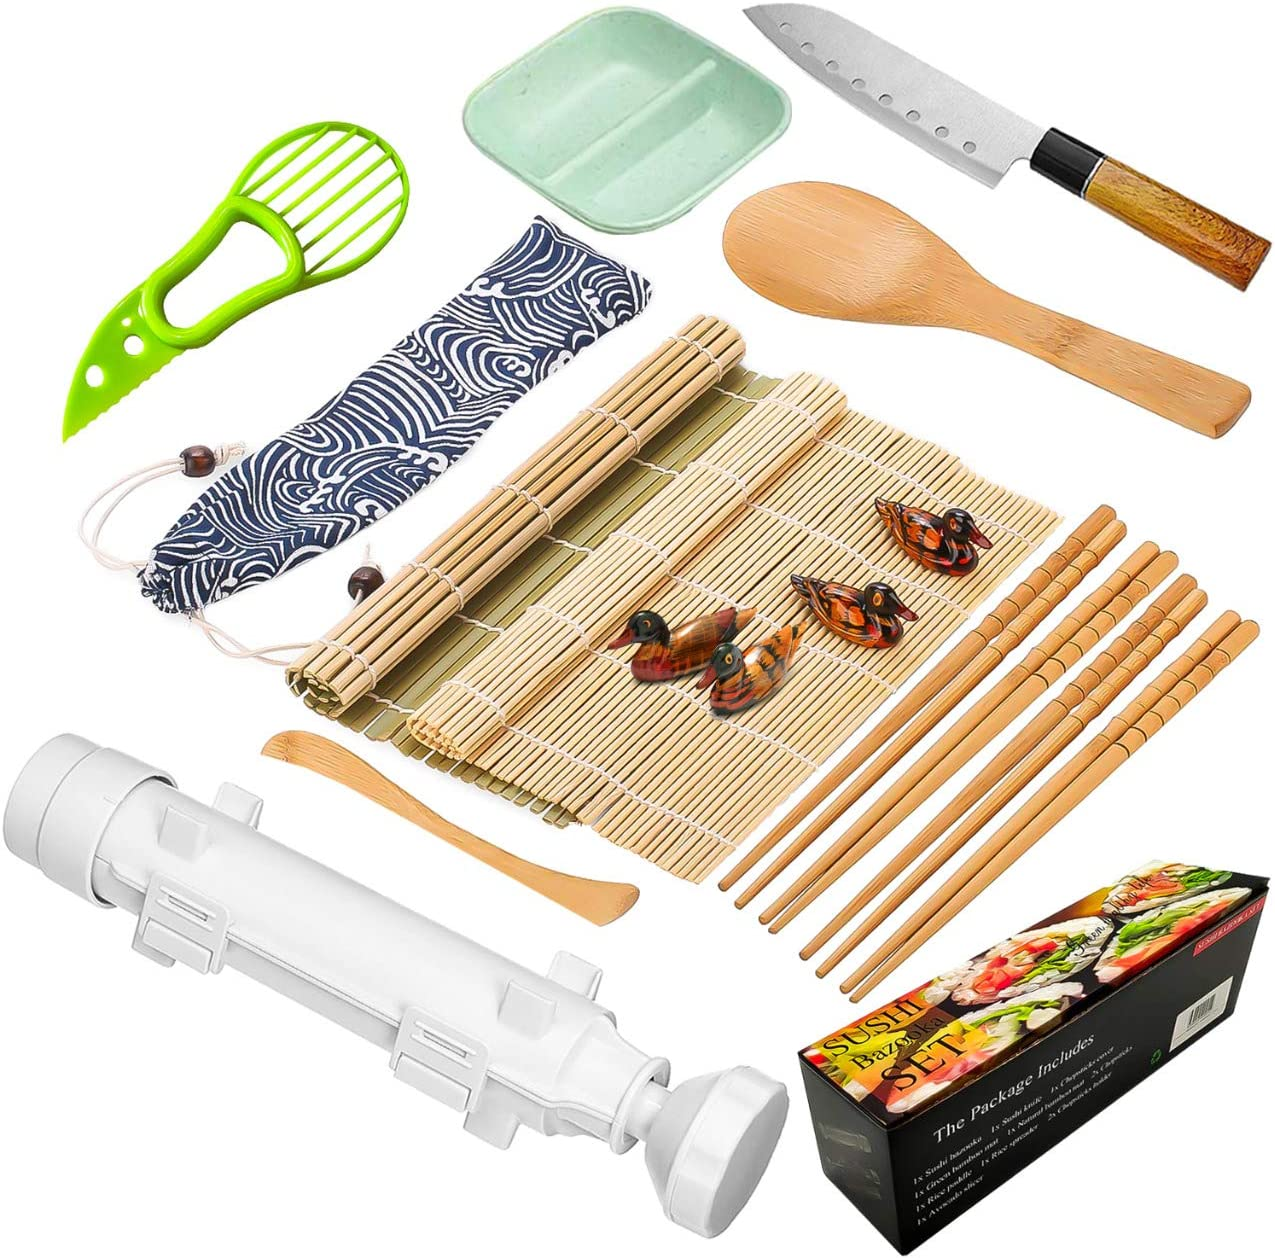 Destination Sushi Nippon regular agency Making Kit-All In Bazooka with Boston Mall One Maker